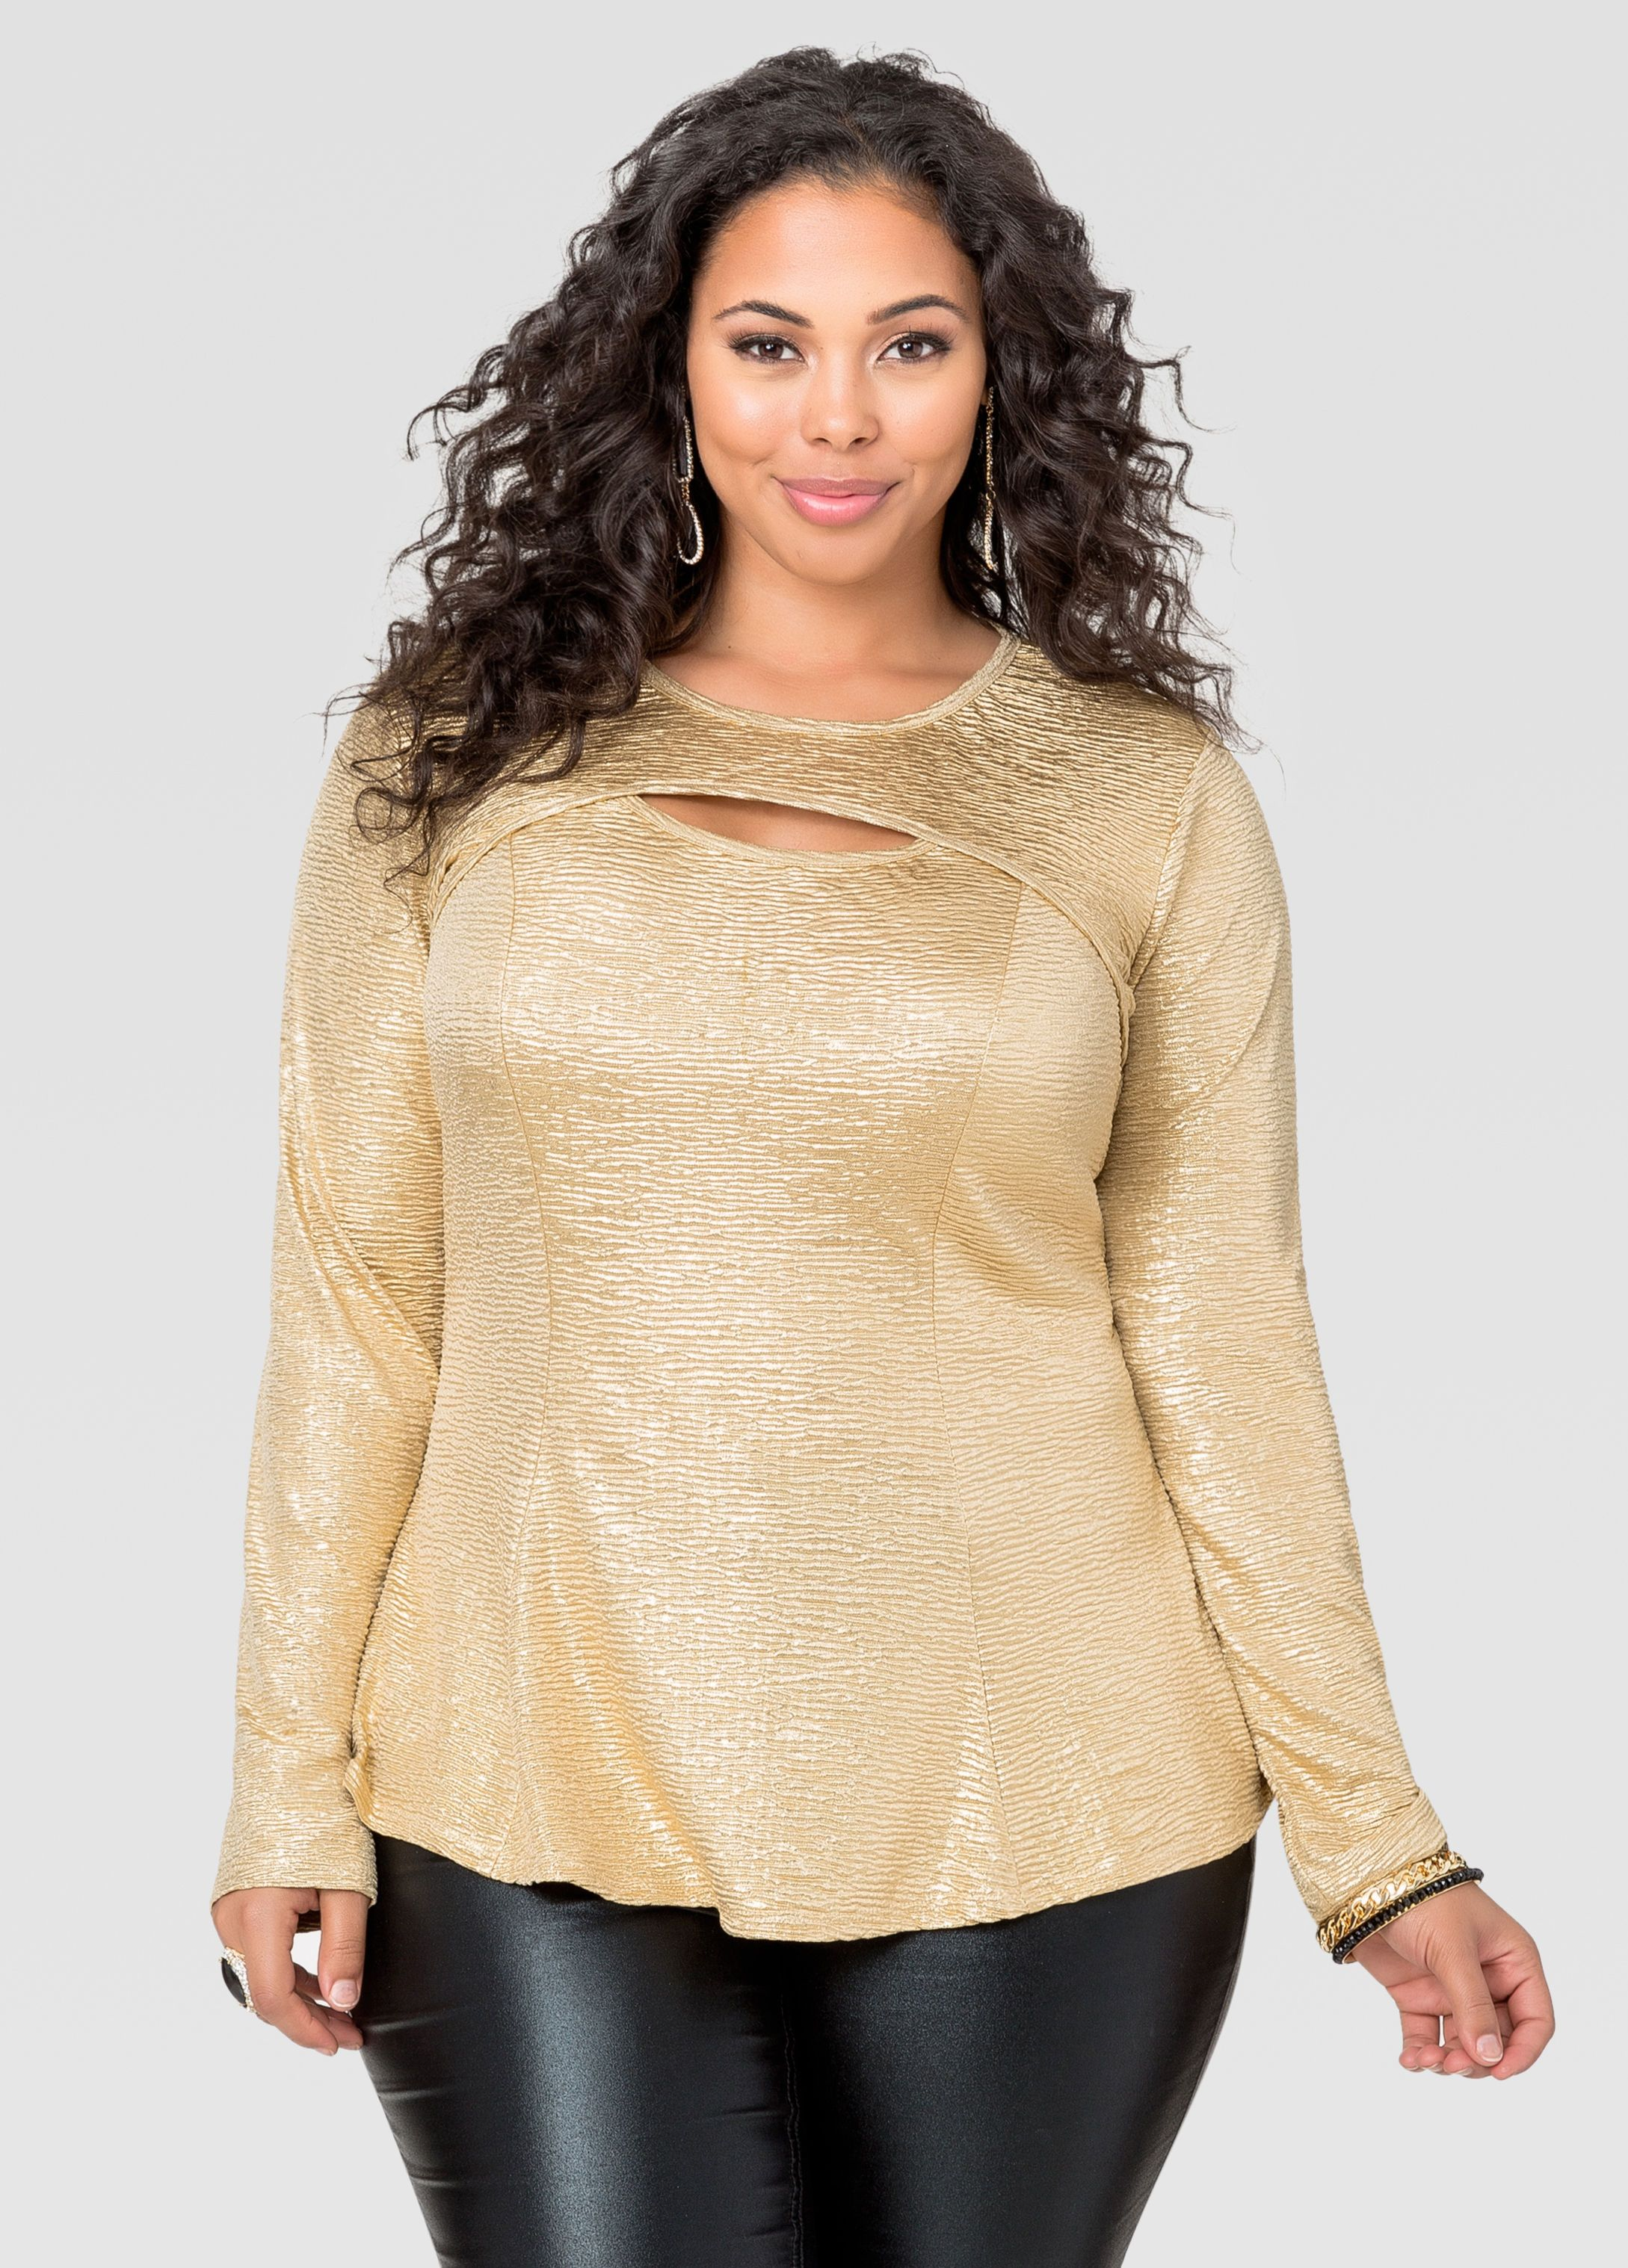 plus-size? Perfection | love you | Pinterest | Curvy, Curves and ...